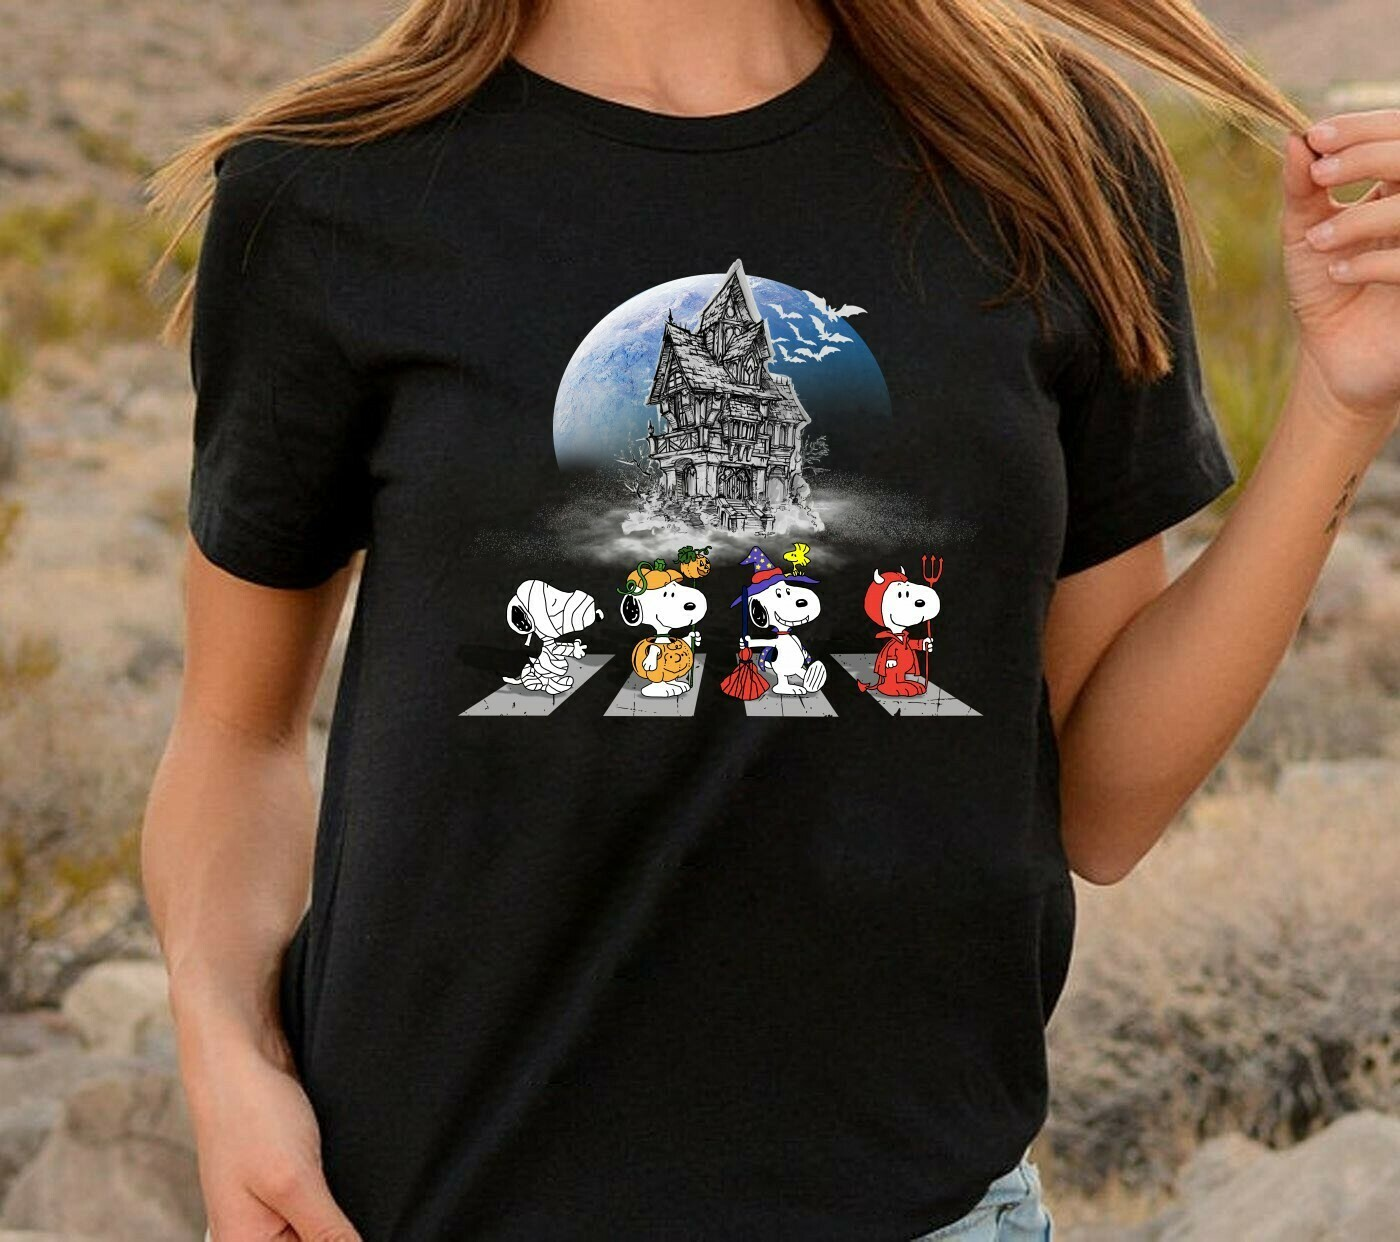 Snoopy Cosplay Halloween, Snoopy And Peanuts Trick Or Treat Halloween Costume Gifts for Best Friend Family Vacation Gifts T-Shirt Long Sleeve Sweatshirt Hoodie Jolly Family Gifts